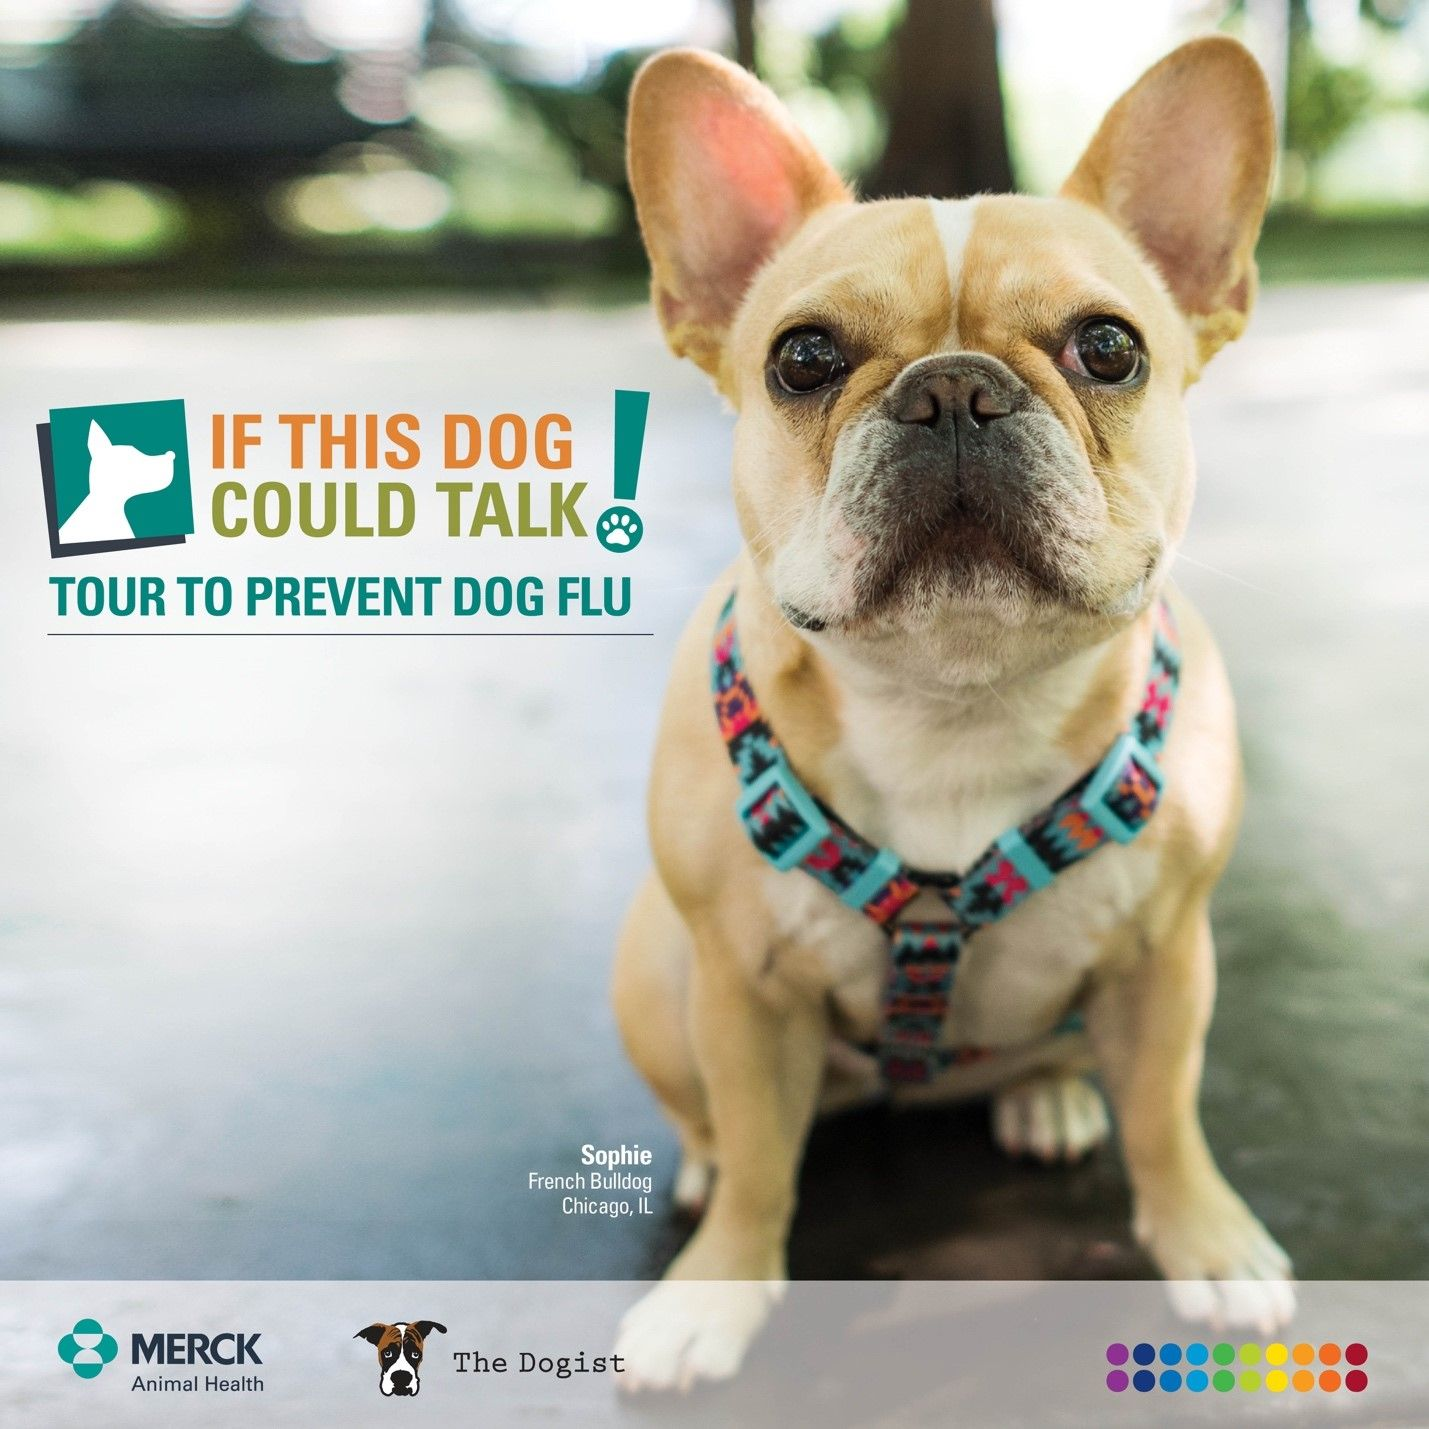 Download New P O Alfrom Merck Animal Health And Thedogist Learn About Protecting Your Dog From Dogflu Ifthisdogcouldtalk Ad